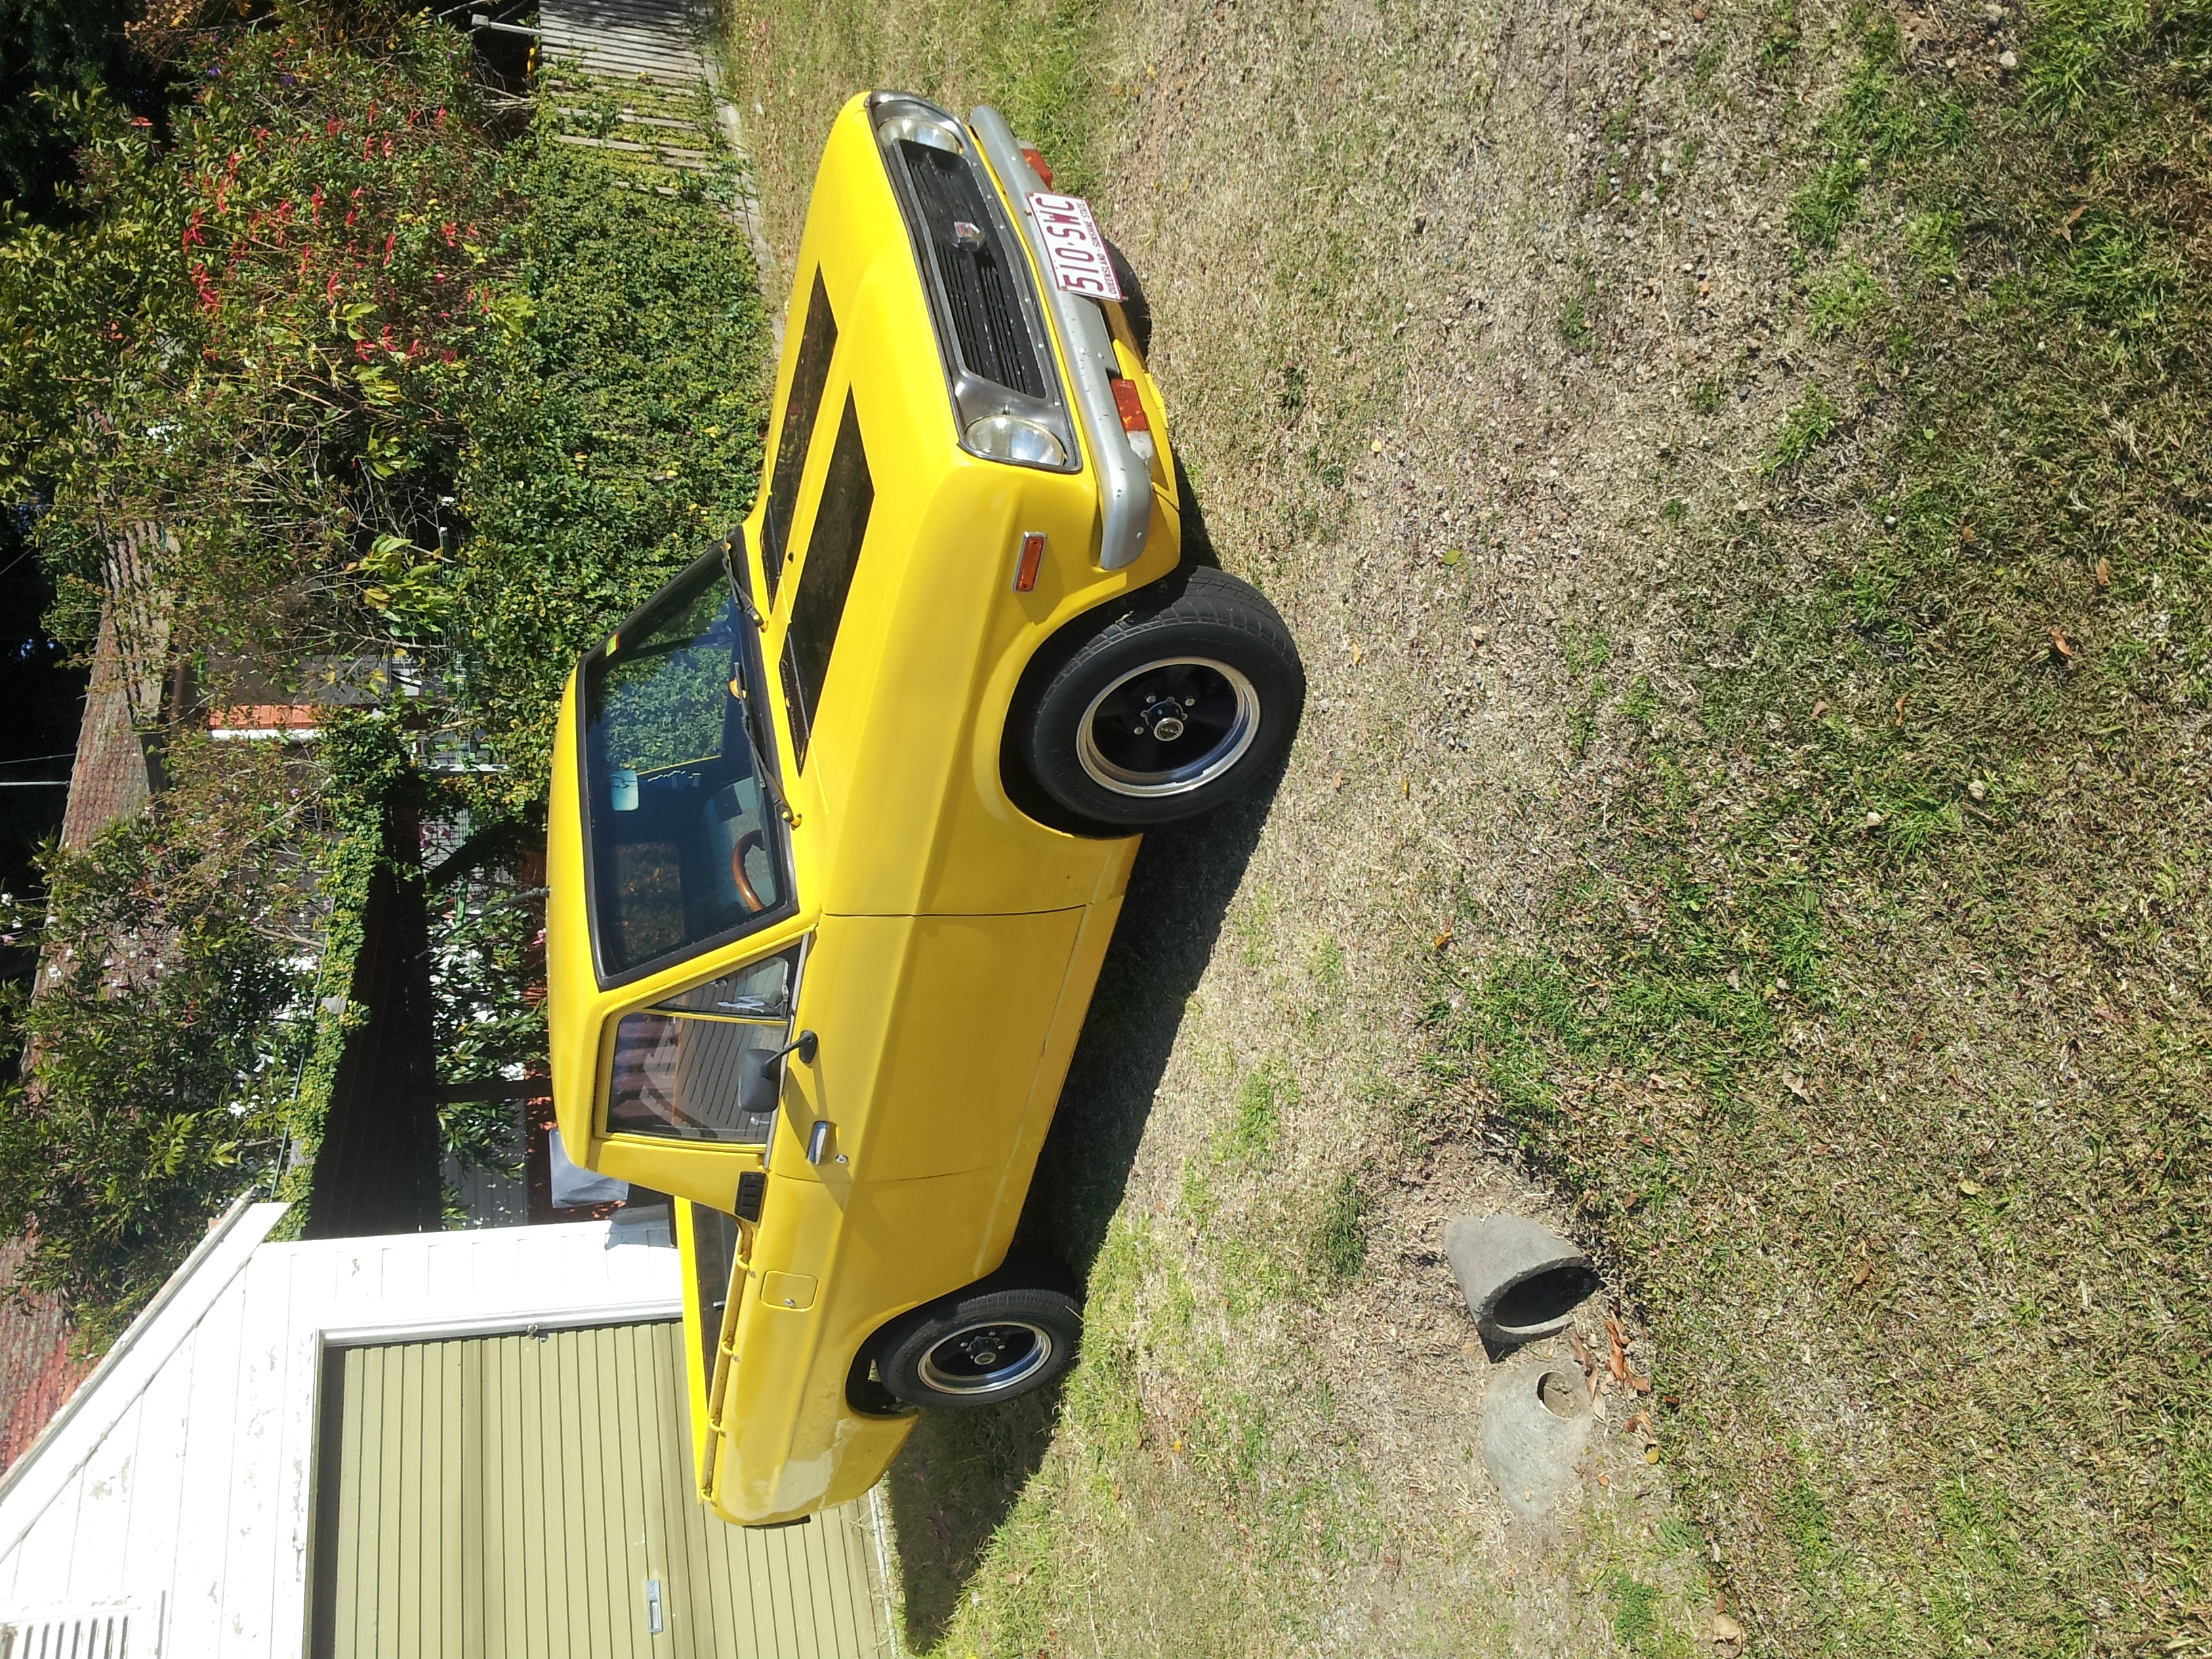 1981 Datsun 1200 For Sale or Swap | NSW: Northern Rivers ...